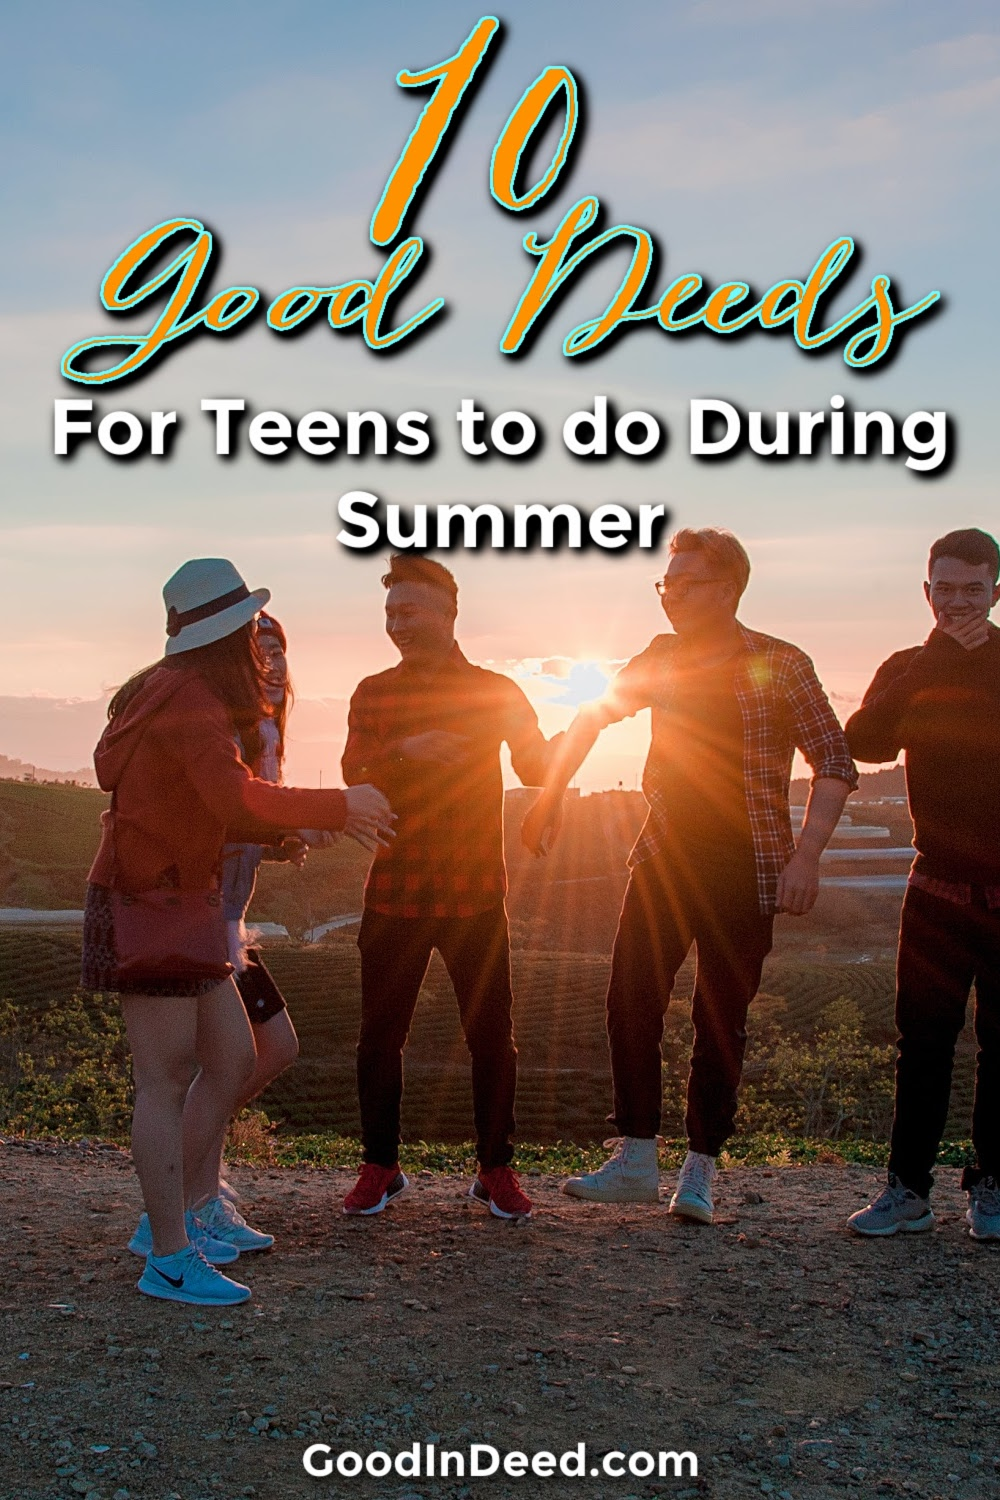 The best good deeds for teens to do during summer are also the best opportunities to grow and learn while making a difference.